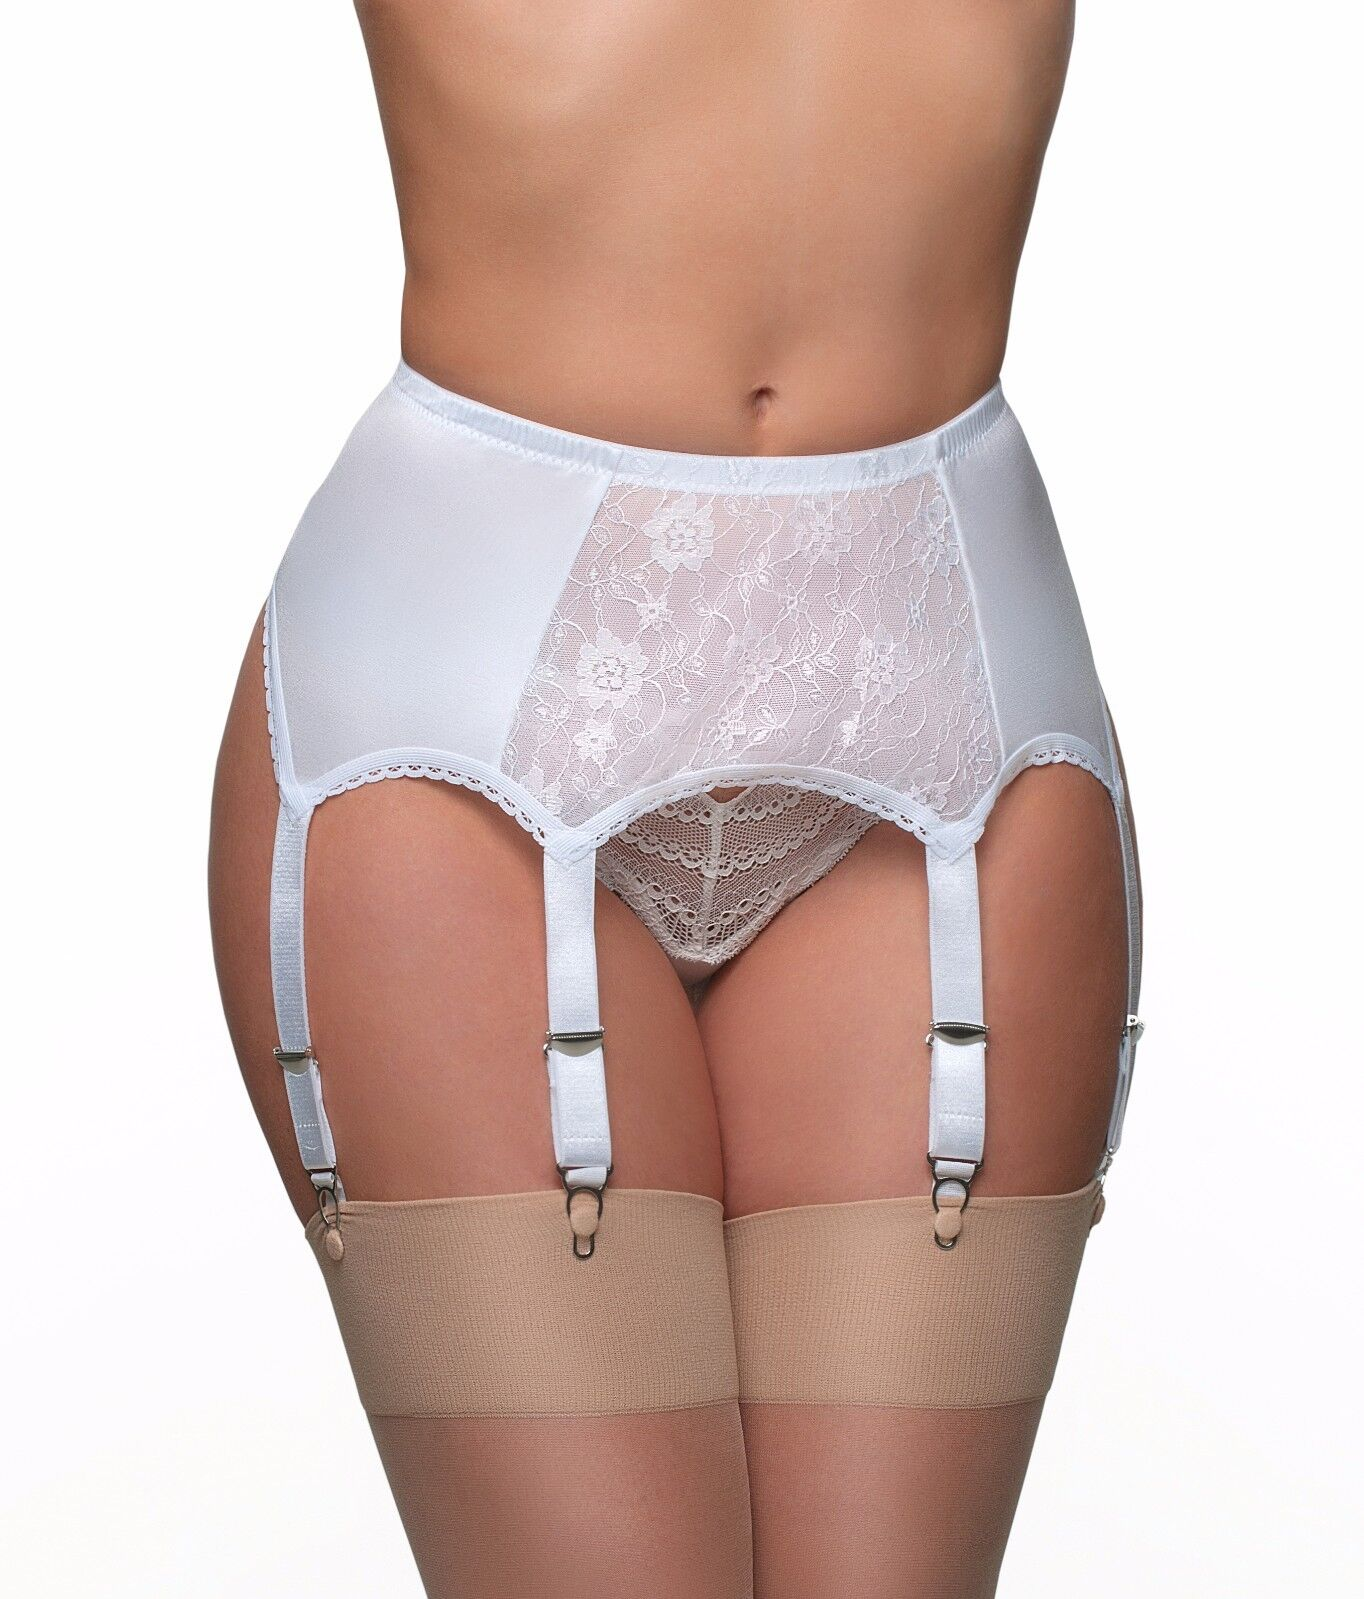 Old fashioned garter belts 26